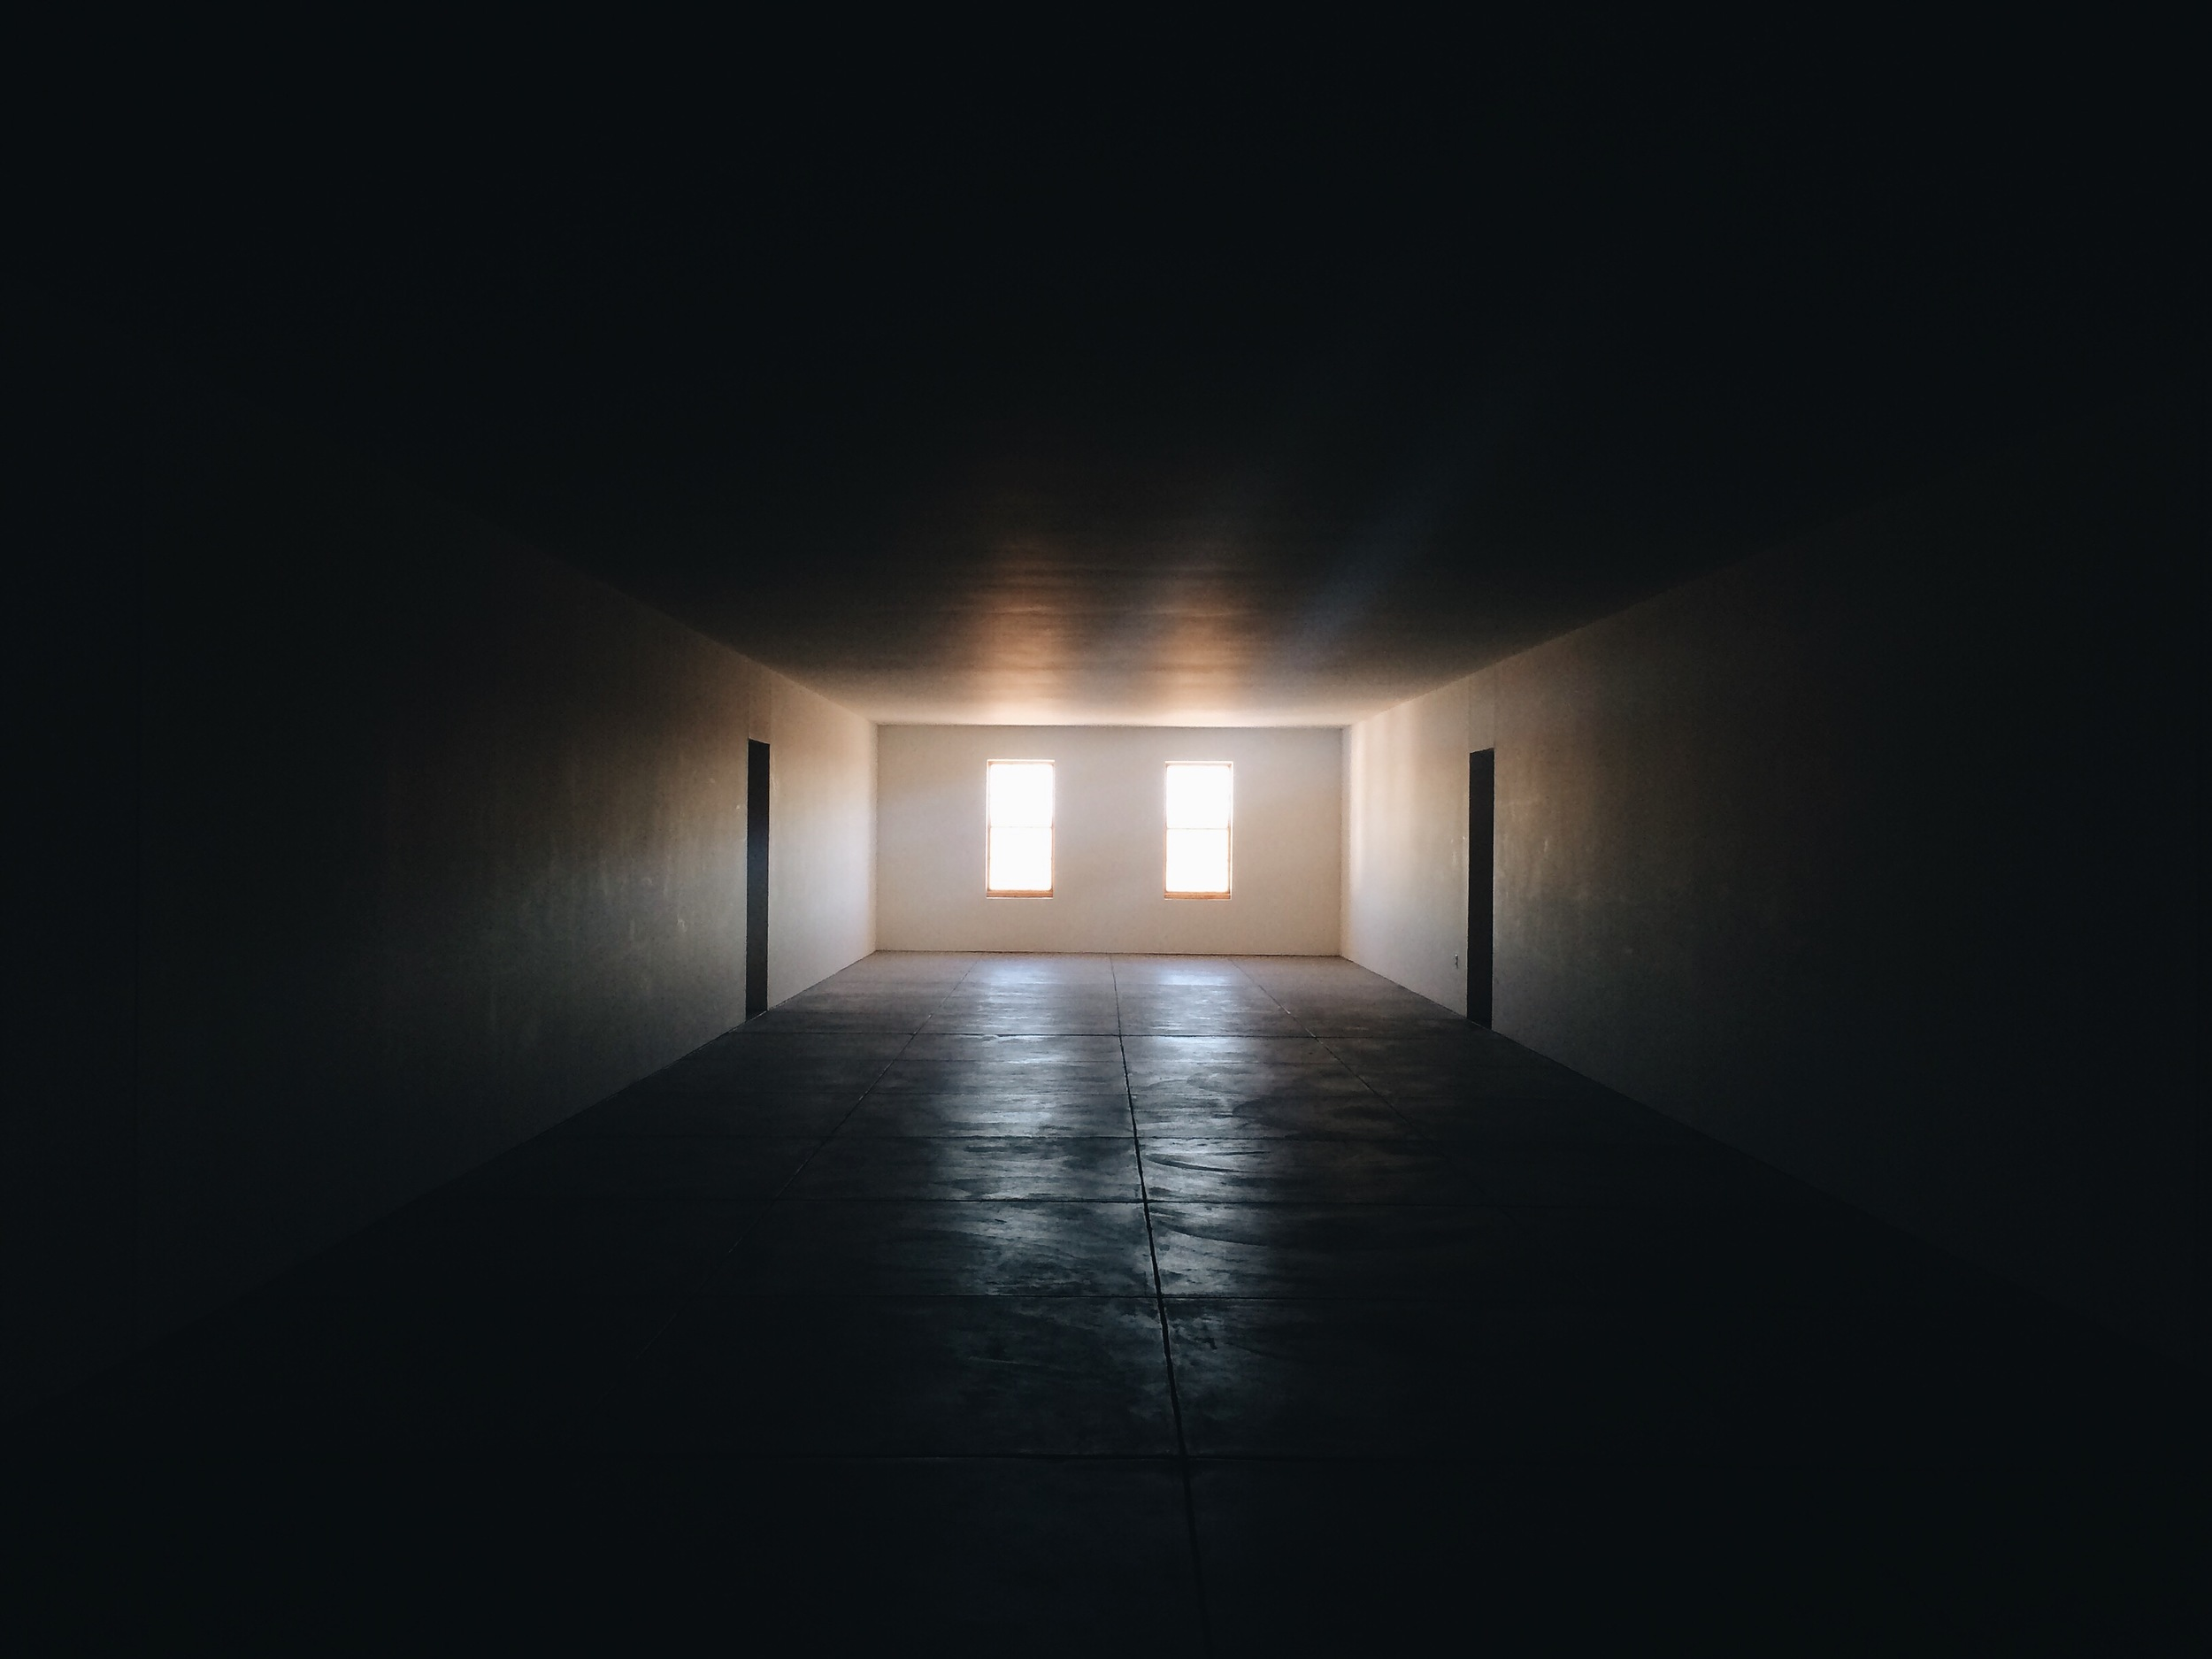 Dan Flavin's light sculptures at Chinati Foundation in Marfa, TX